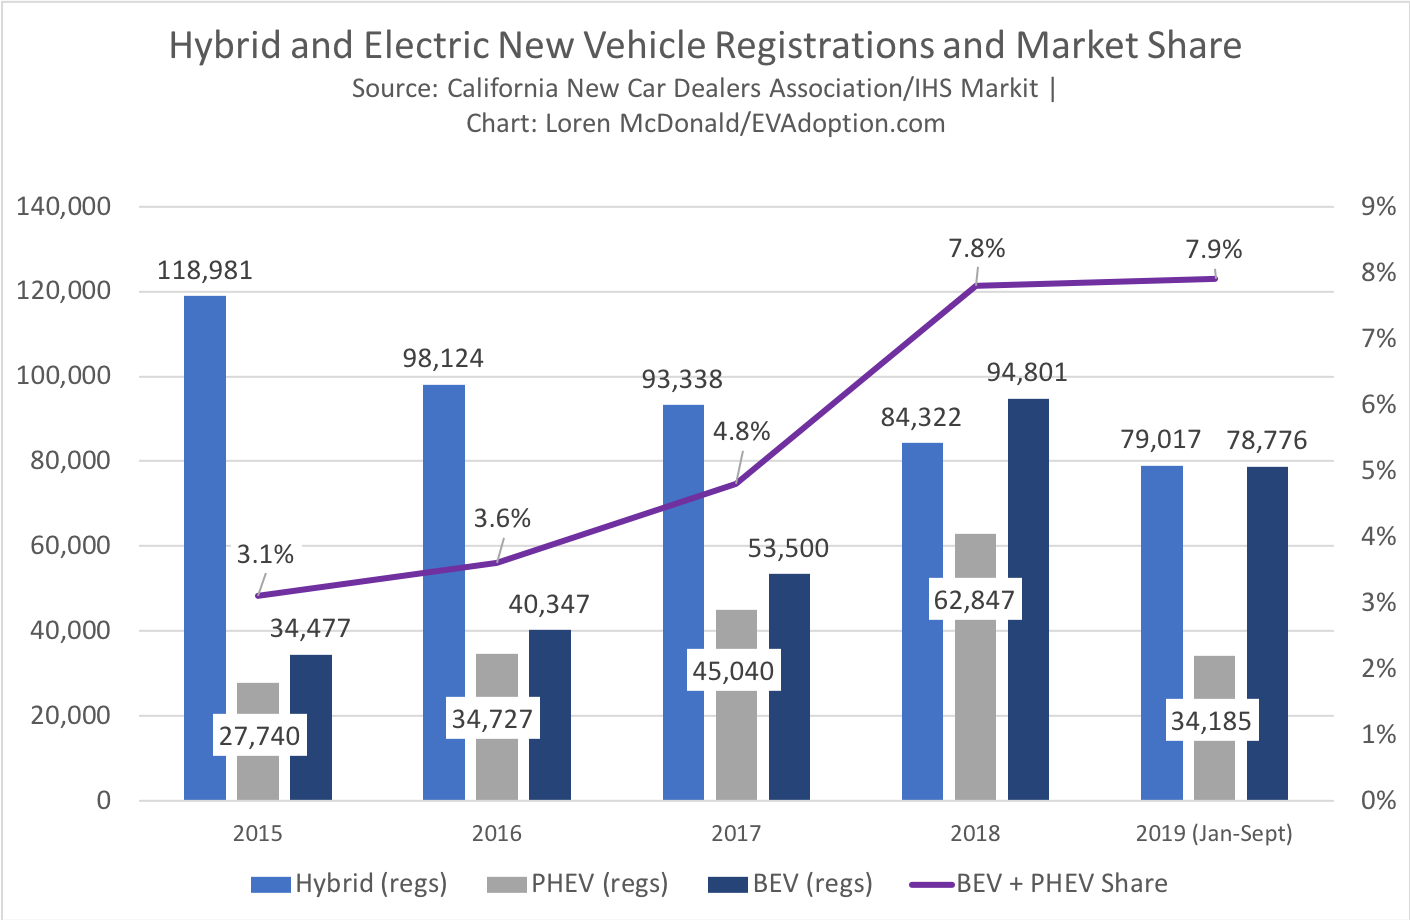 Hybrid and Electric New Vehicle Registrations and Market Share